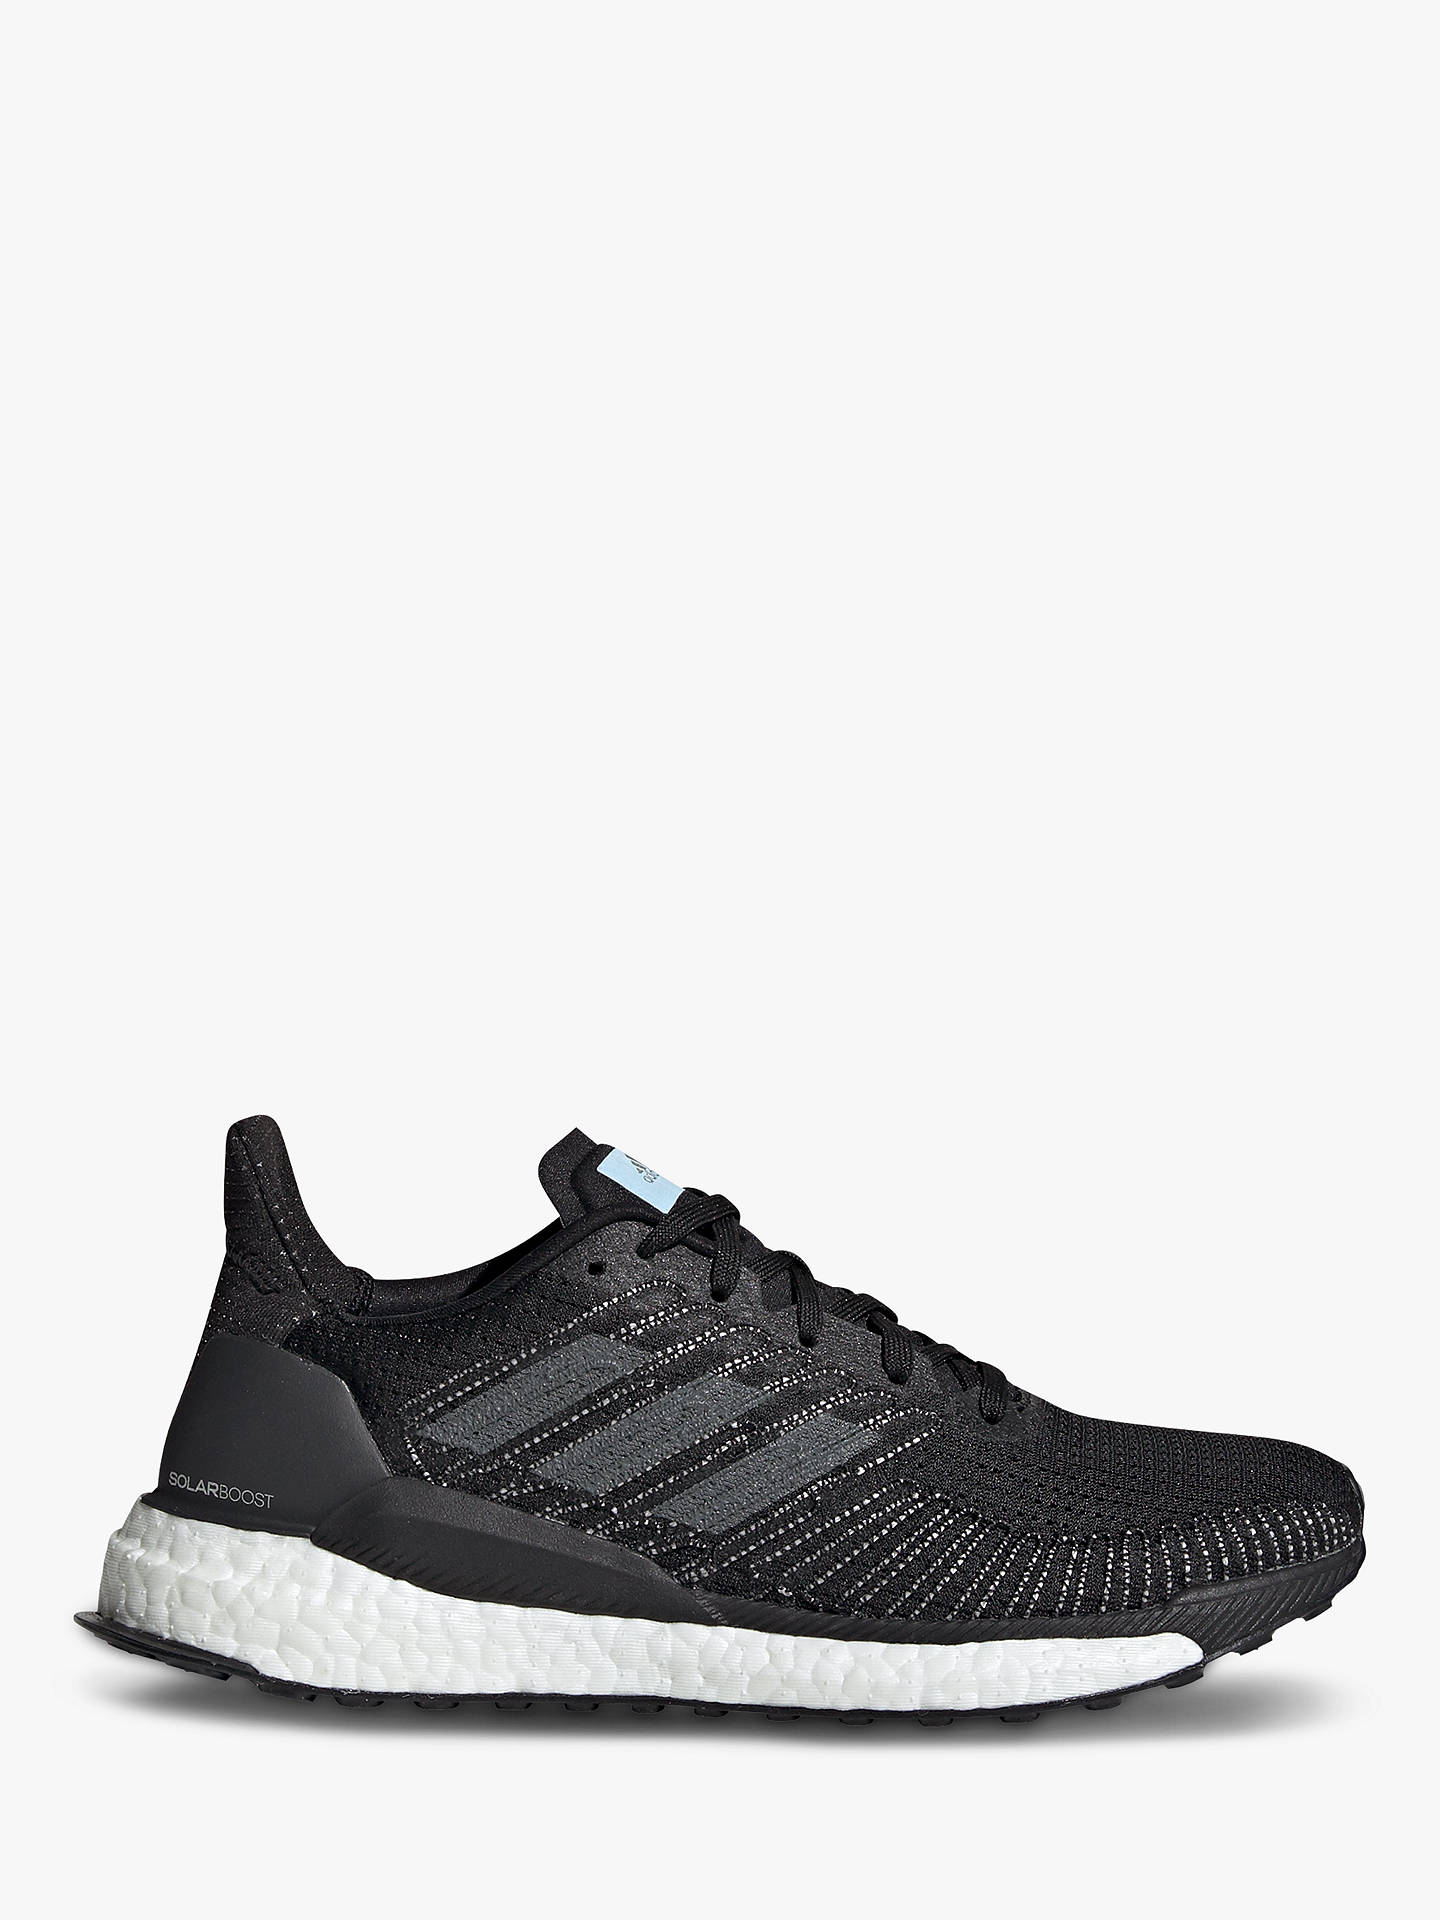 reputable site 96890 2f285 adidas Solar Boost 19 Women's Running Shoes, Core Black/Grey Five/Glow Blue